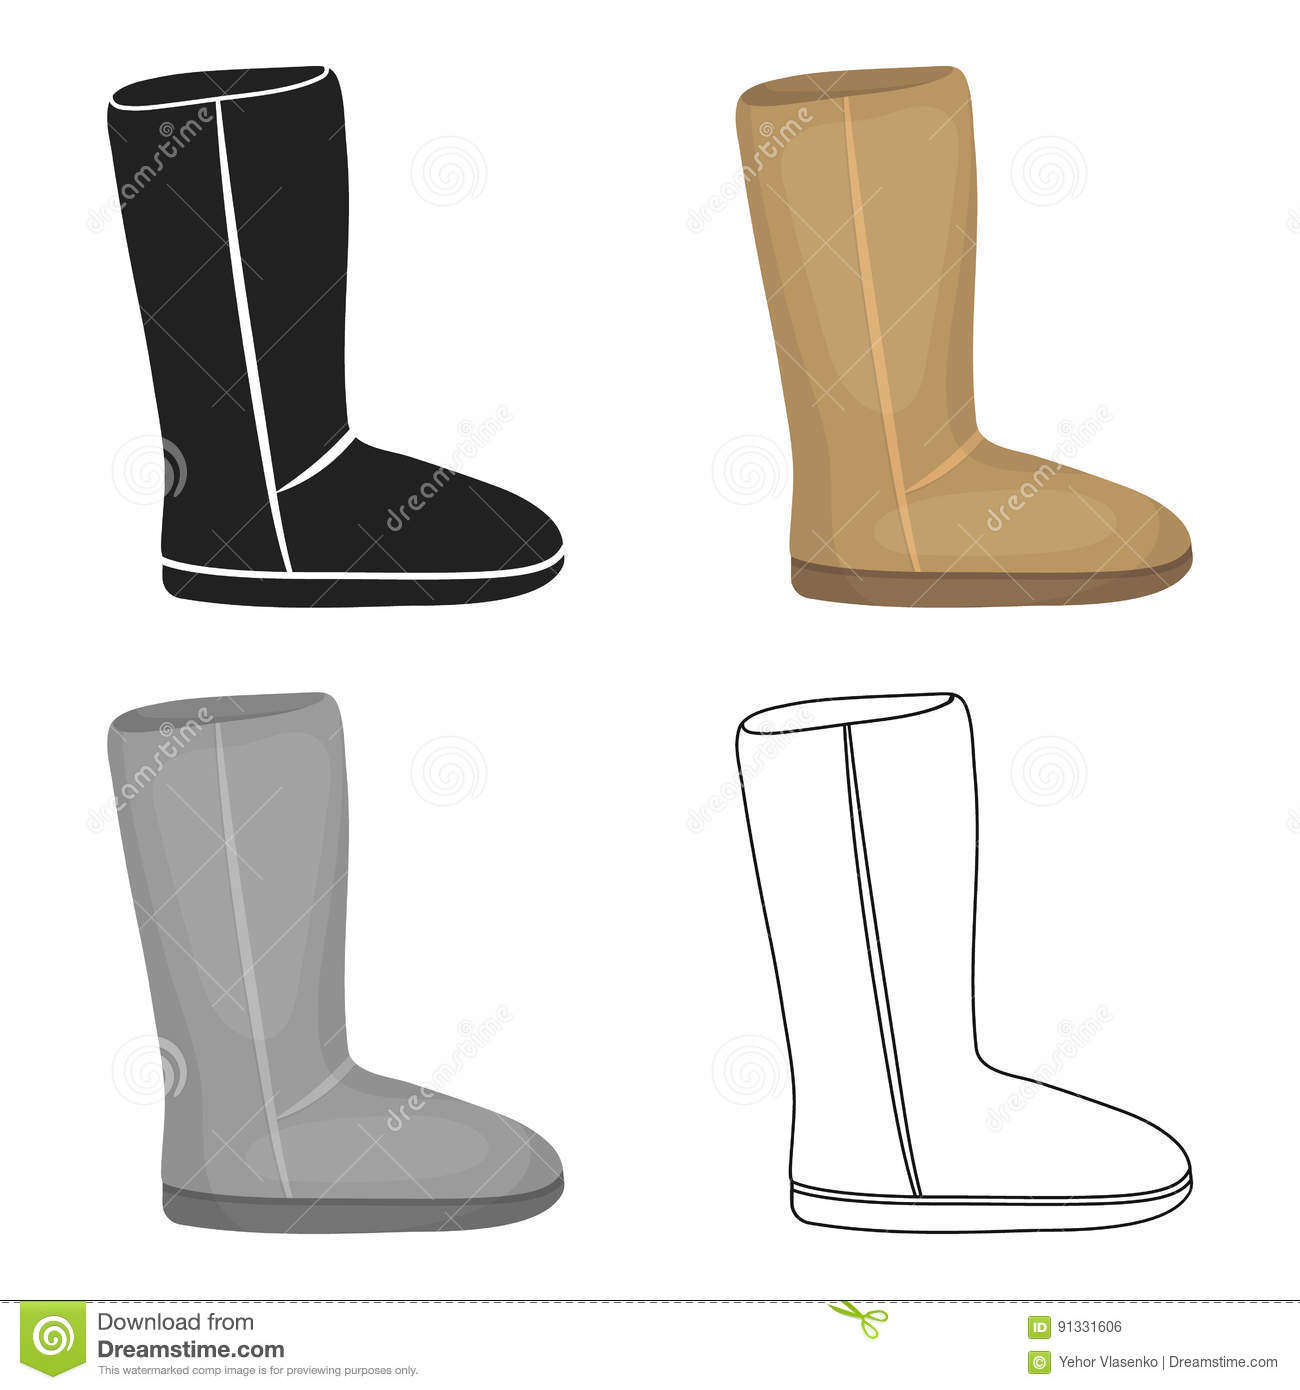 f97b4fca9df Ugg Boots Icon In Cartoon Style Isolated On White Background. Shoes ...